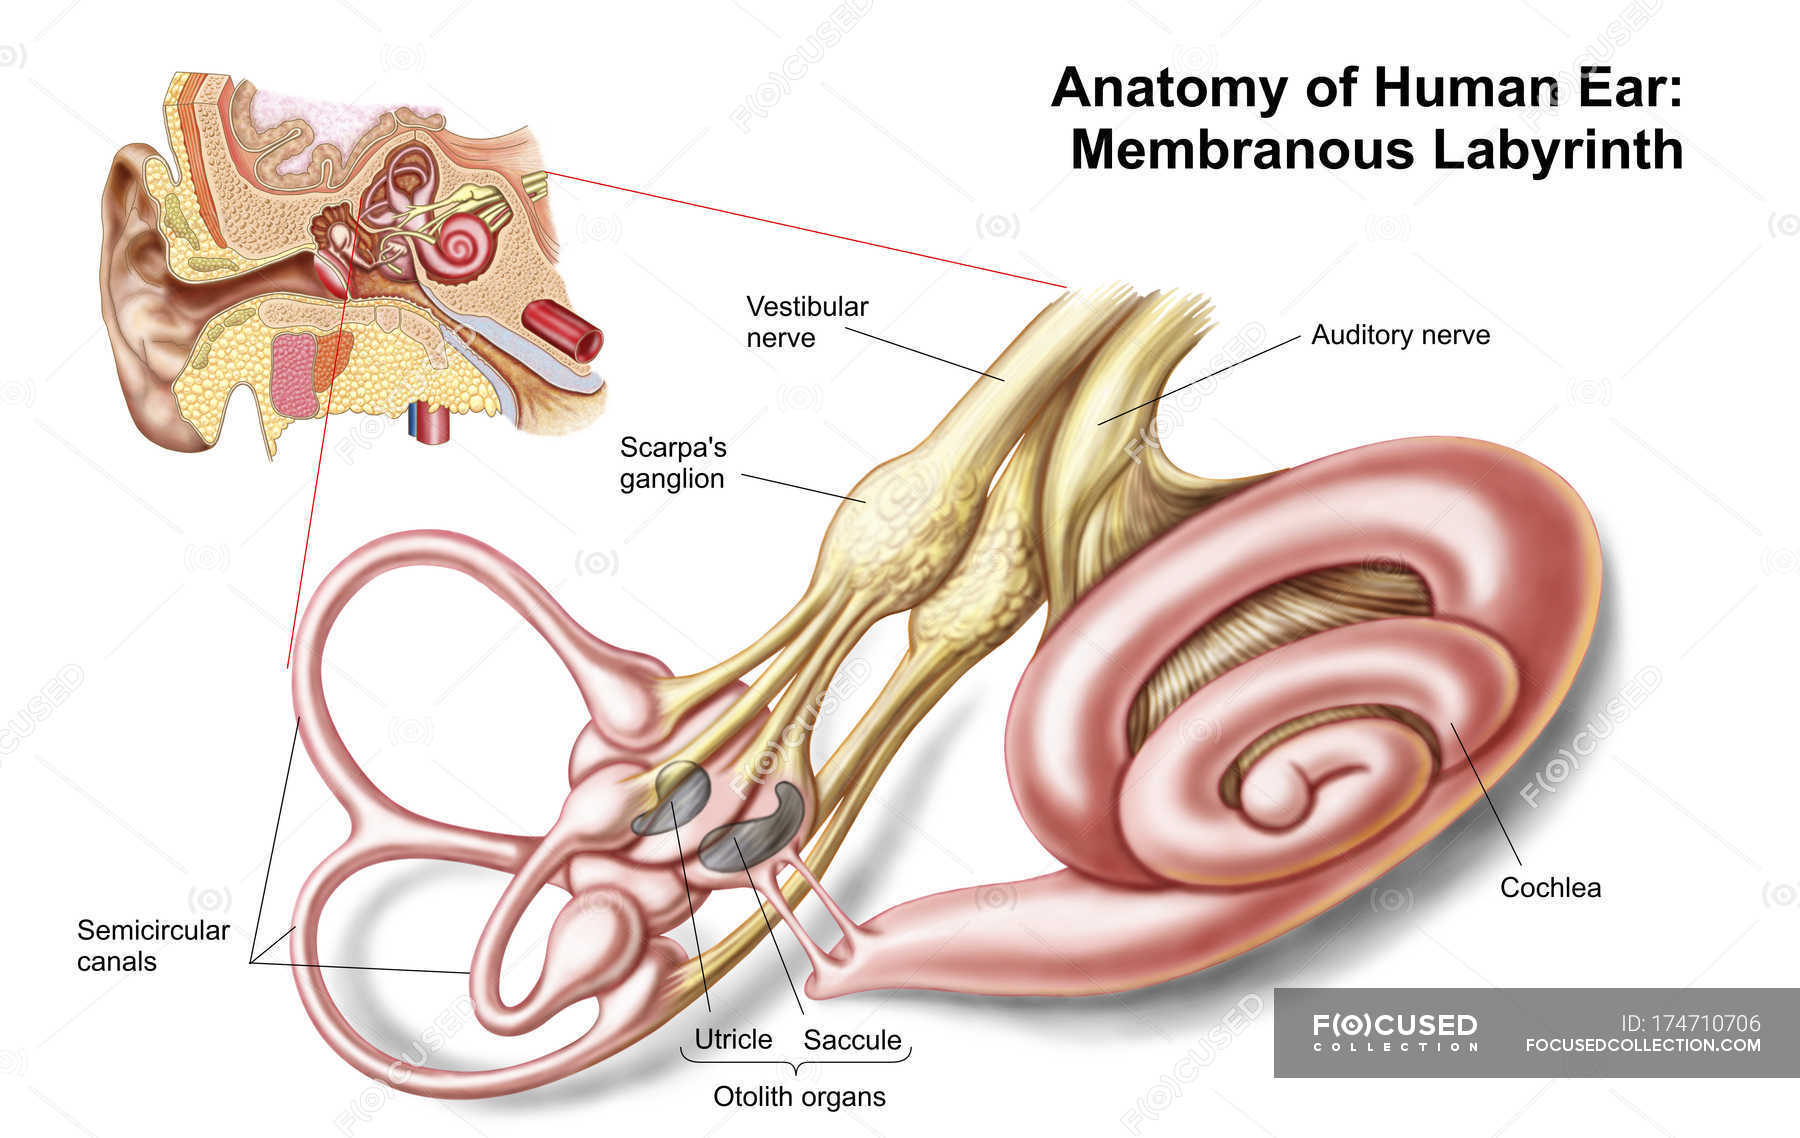 Anatomy Of Human Ear With Membranous Labyrinth Stock Photo